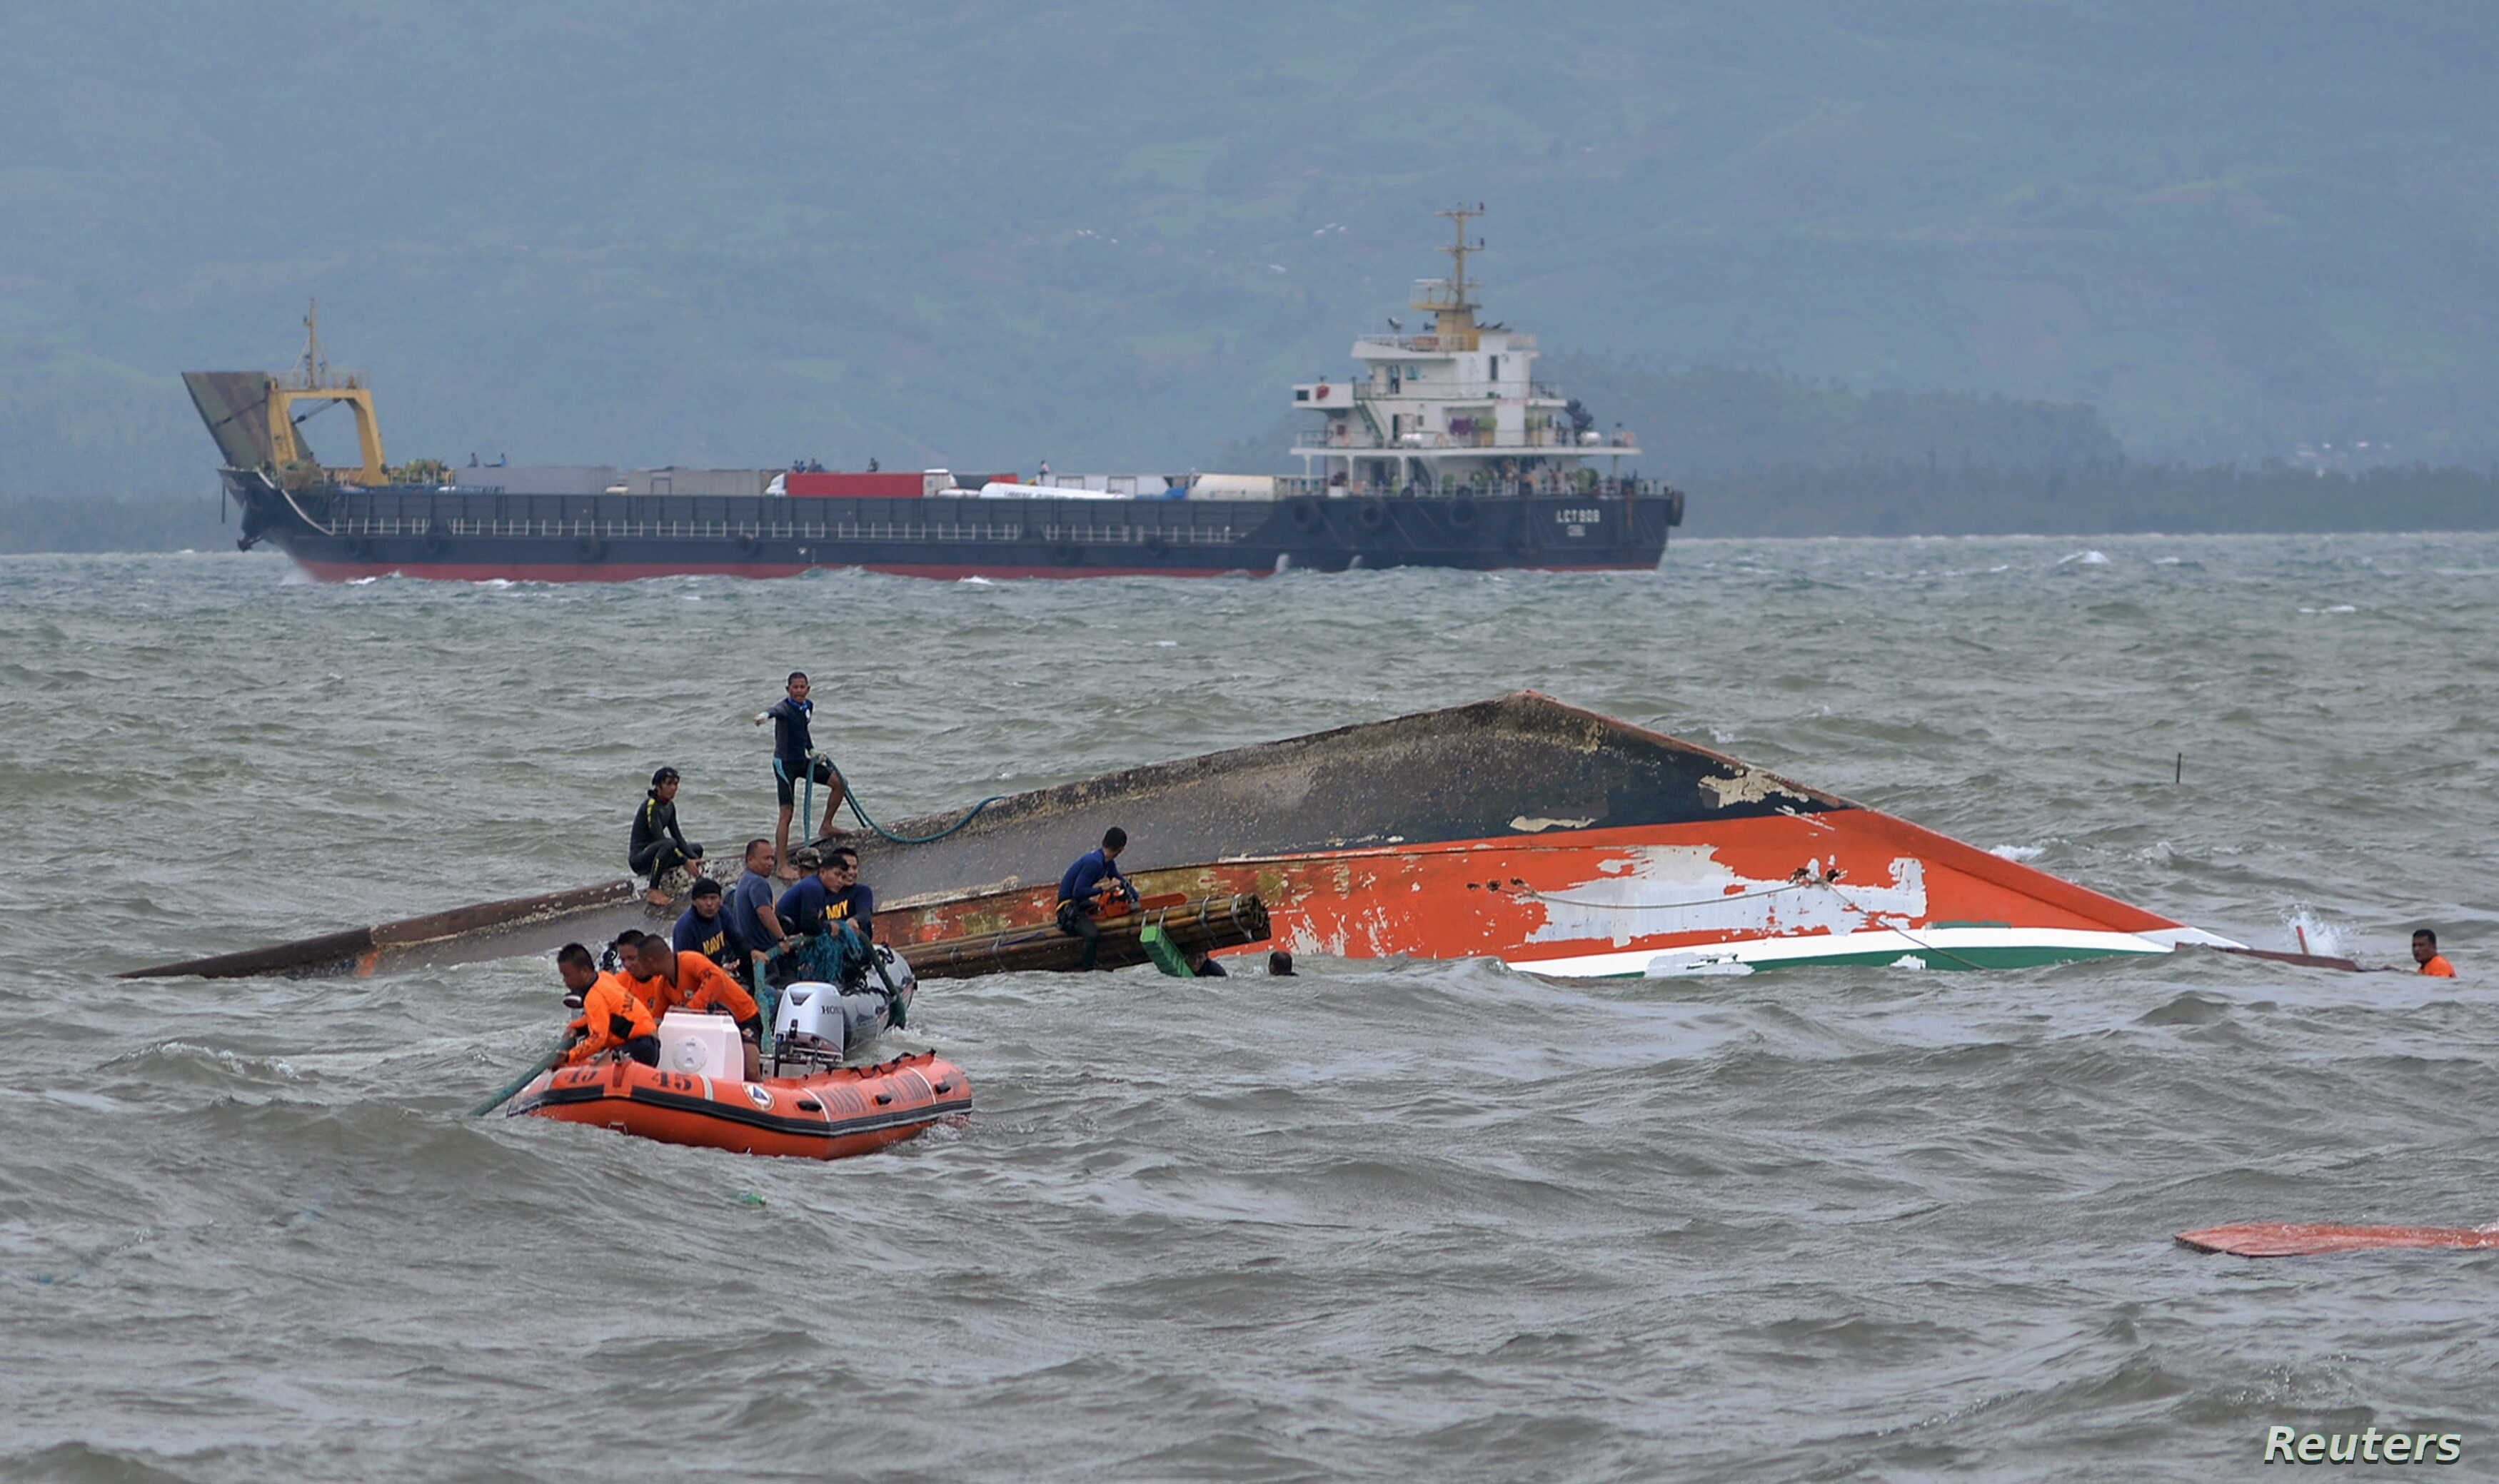 50 Killed in Philippines Ferry Accident | Voice of America - English